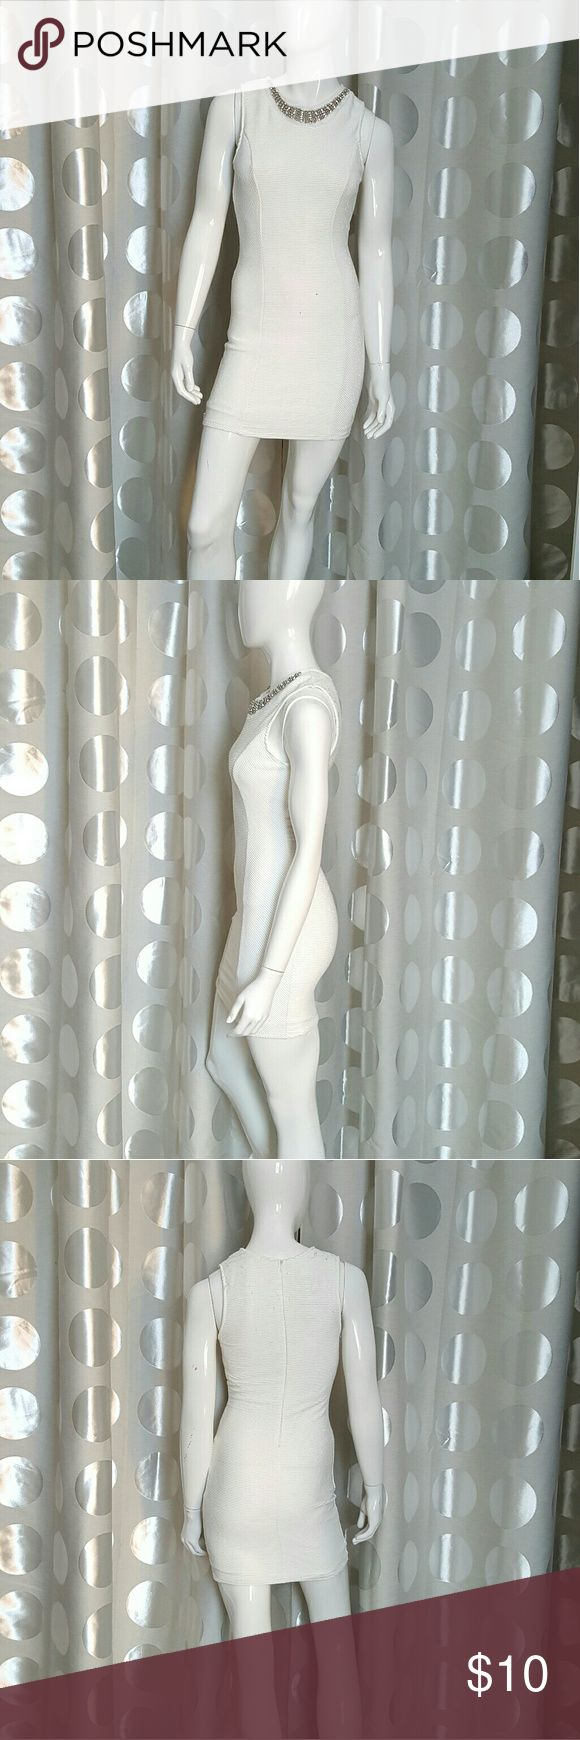 Charlotte Ruuse White Dress This dress is comfortable and not see through.  There are a couple of small drops of wine on it that you can maybe get out as seen in 5th photo.  I never tried. Used only once.   Very nice and elegant dress.  Zips up in the back. Charlotte Russe Dresses Mini